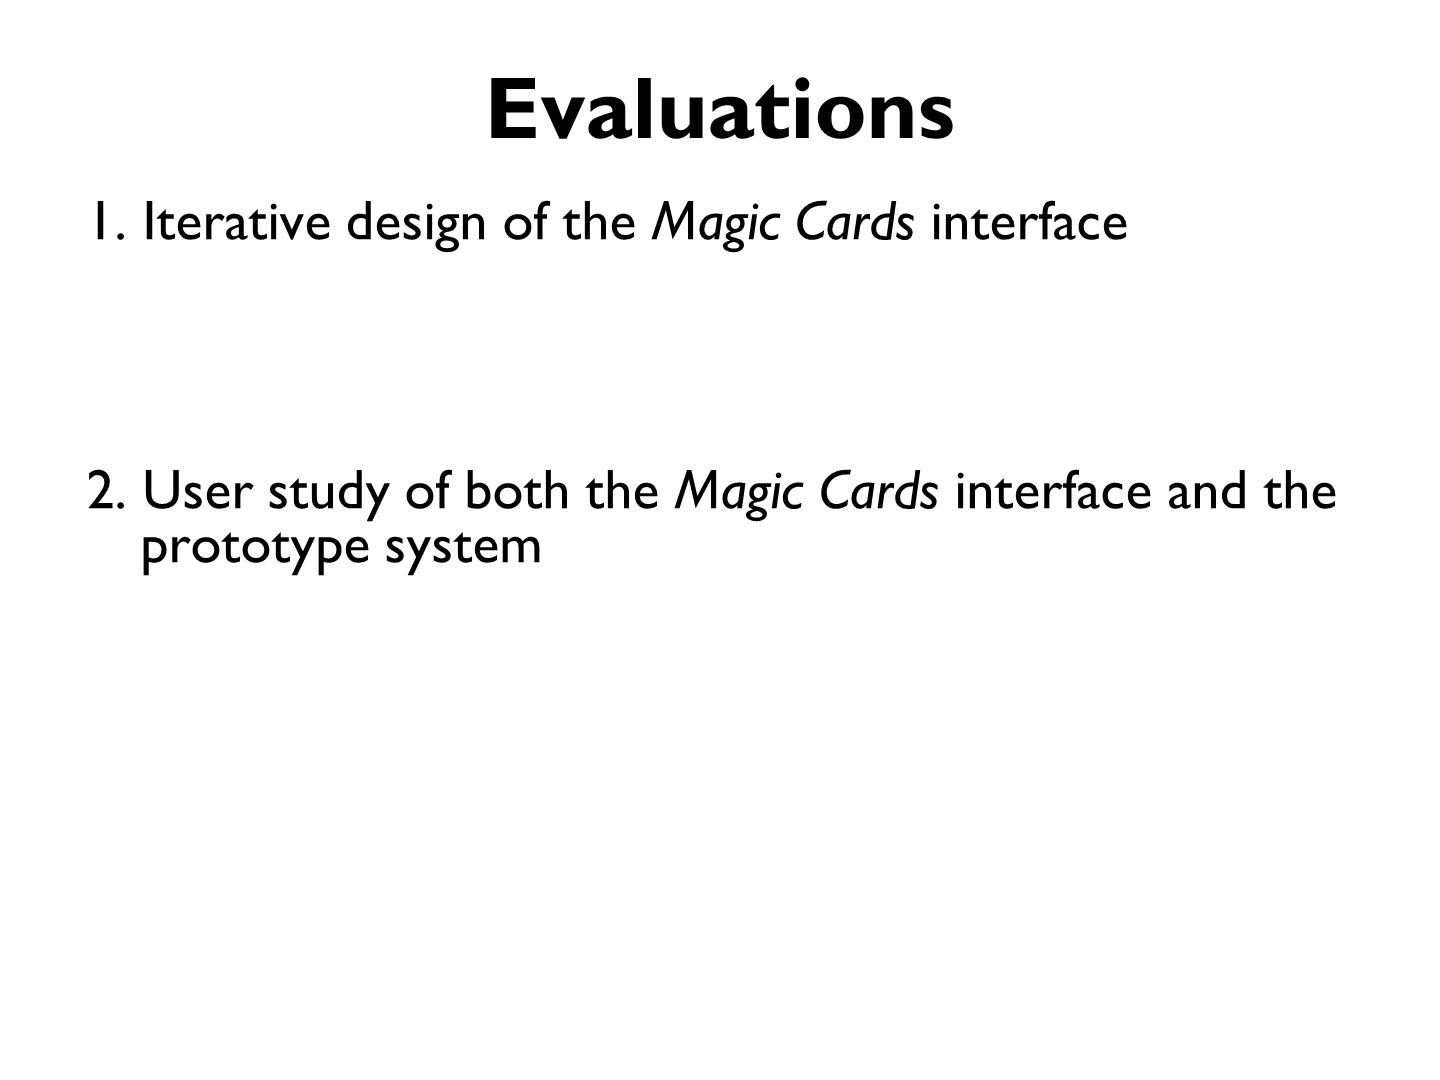 Iterative Design of Magic Cards Goal –understand users –receive initial feedback on design concepts –refine paper-tag interface Approach –6 participants, 2 hrs per person (1 male, 5 females, age range 21-64, mean 35.8) –Semi-structured interviews Iterations